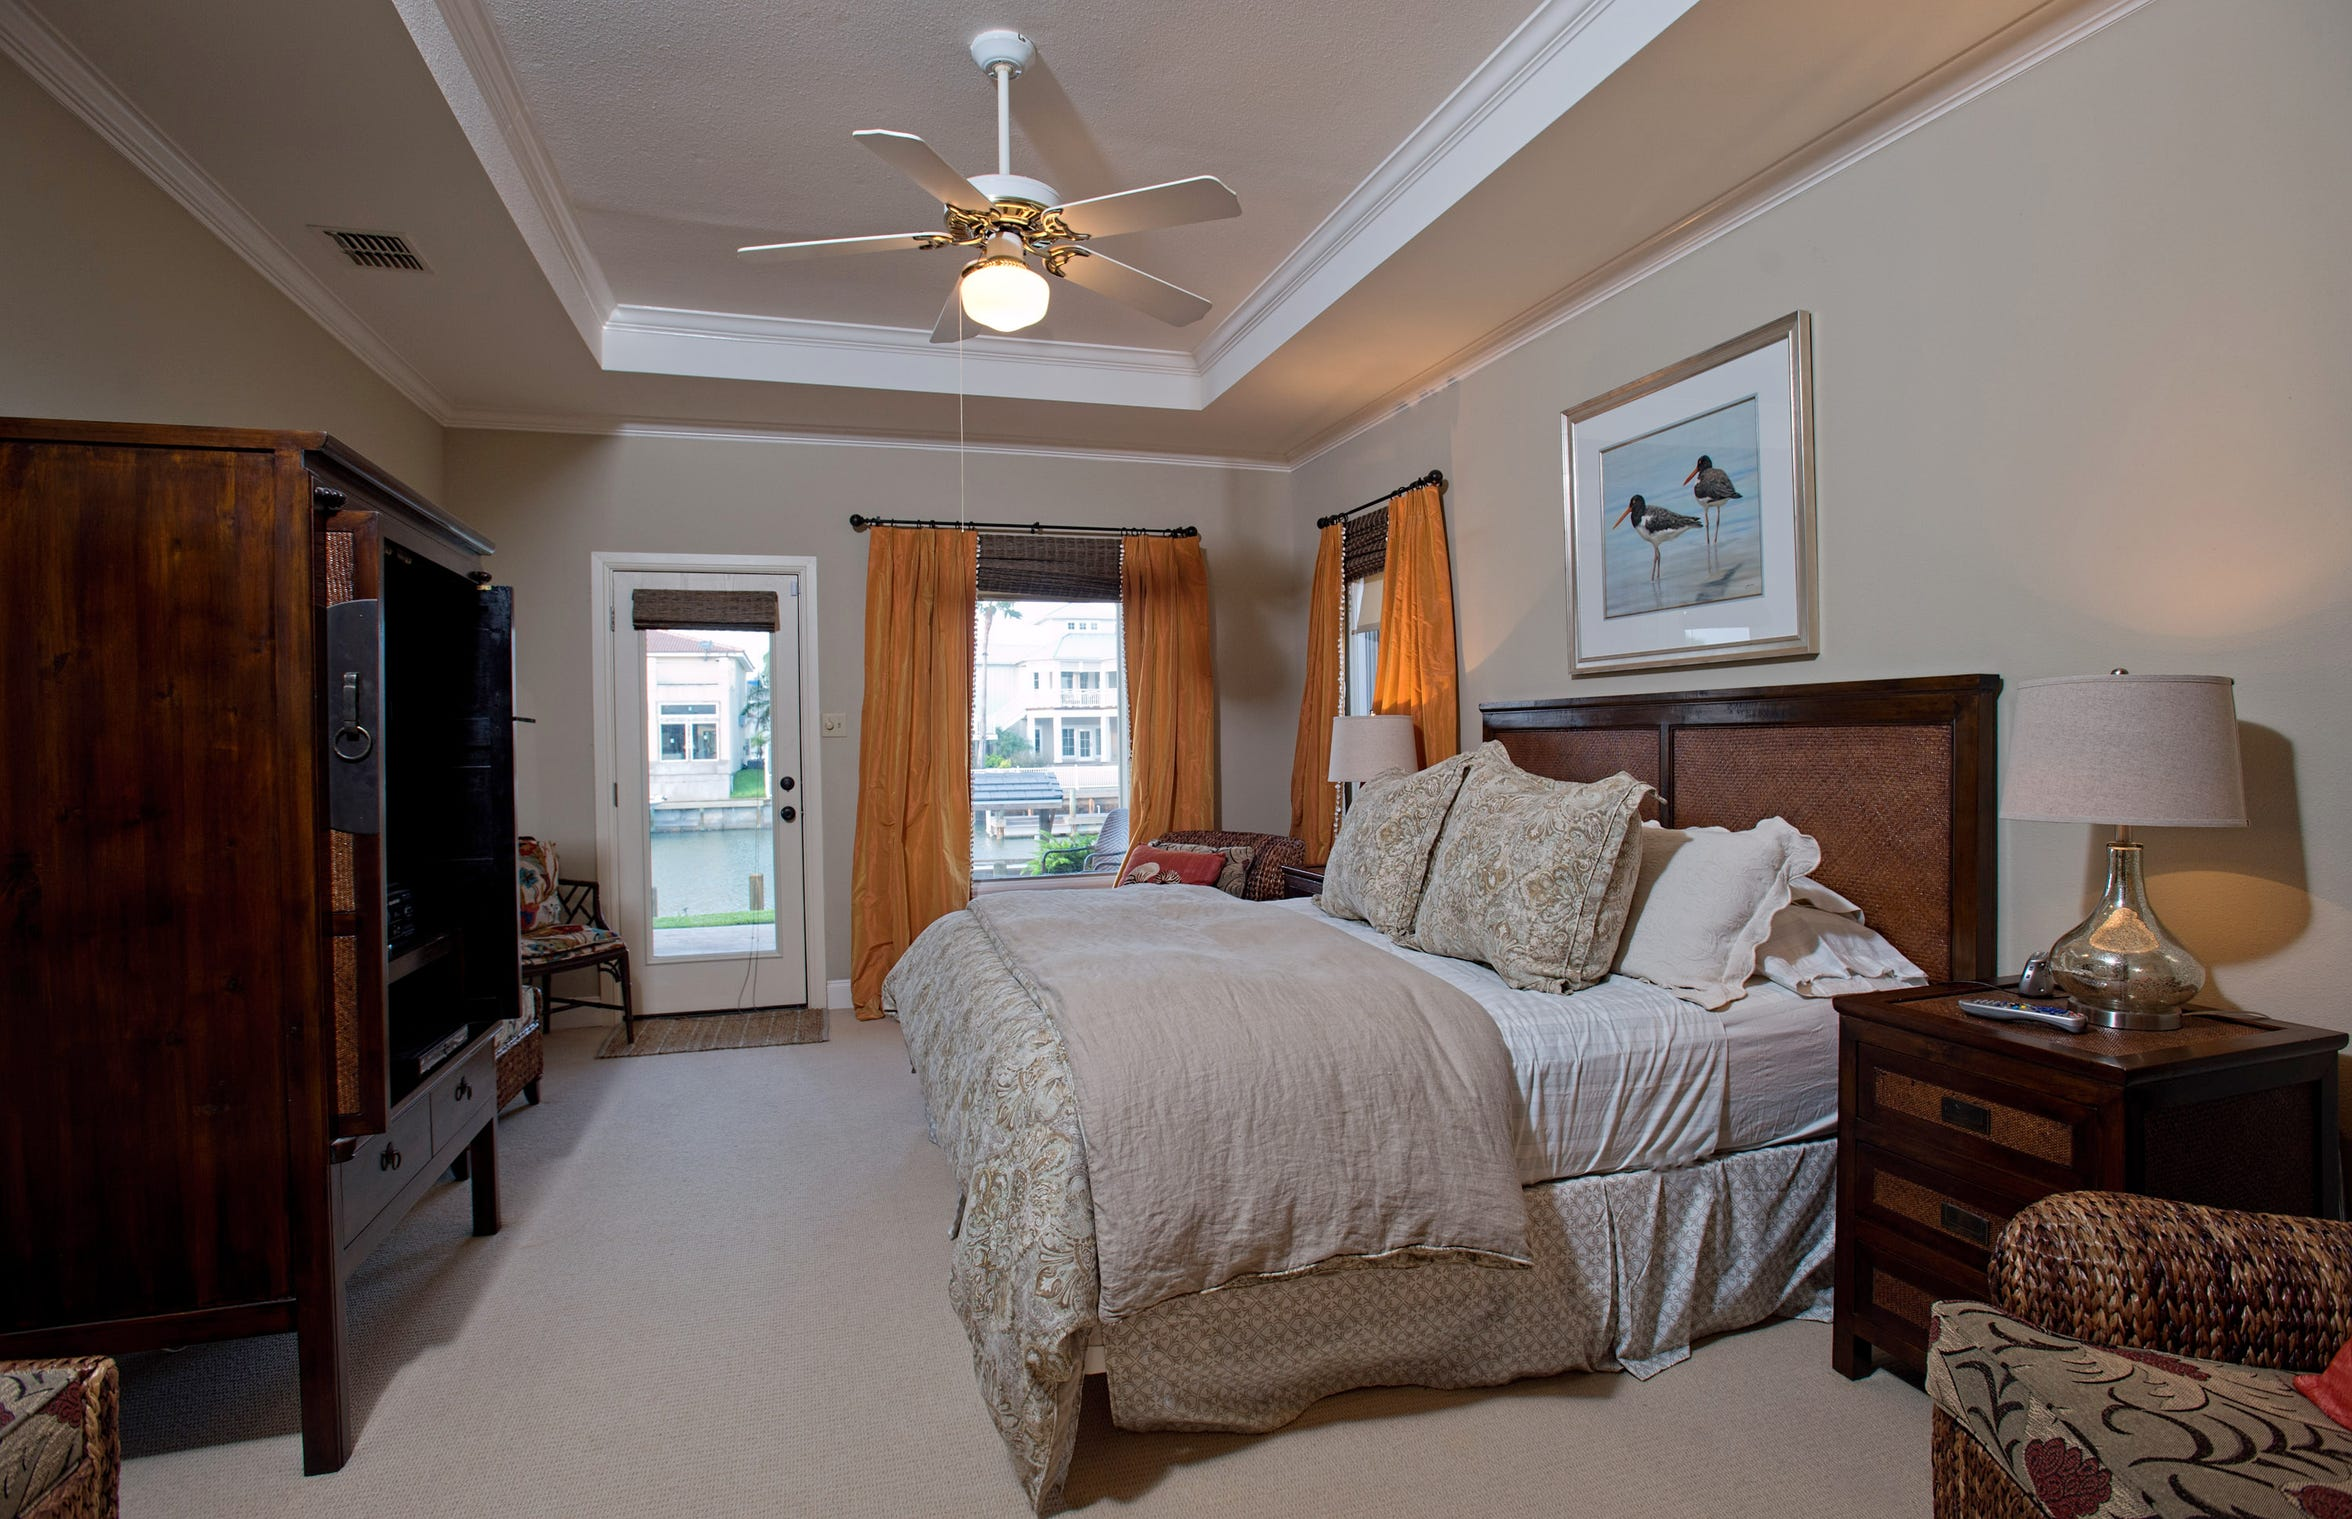 The first floor master bedroom features a water views and deck access plus an attractive recessed ceiling.